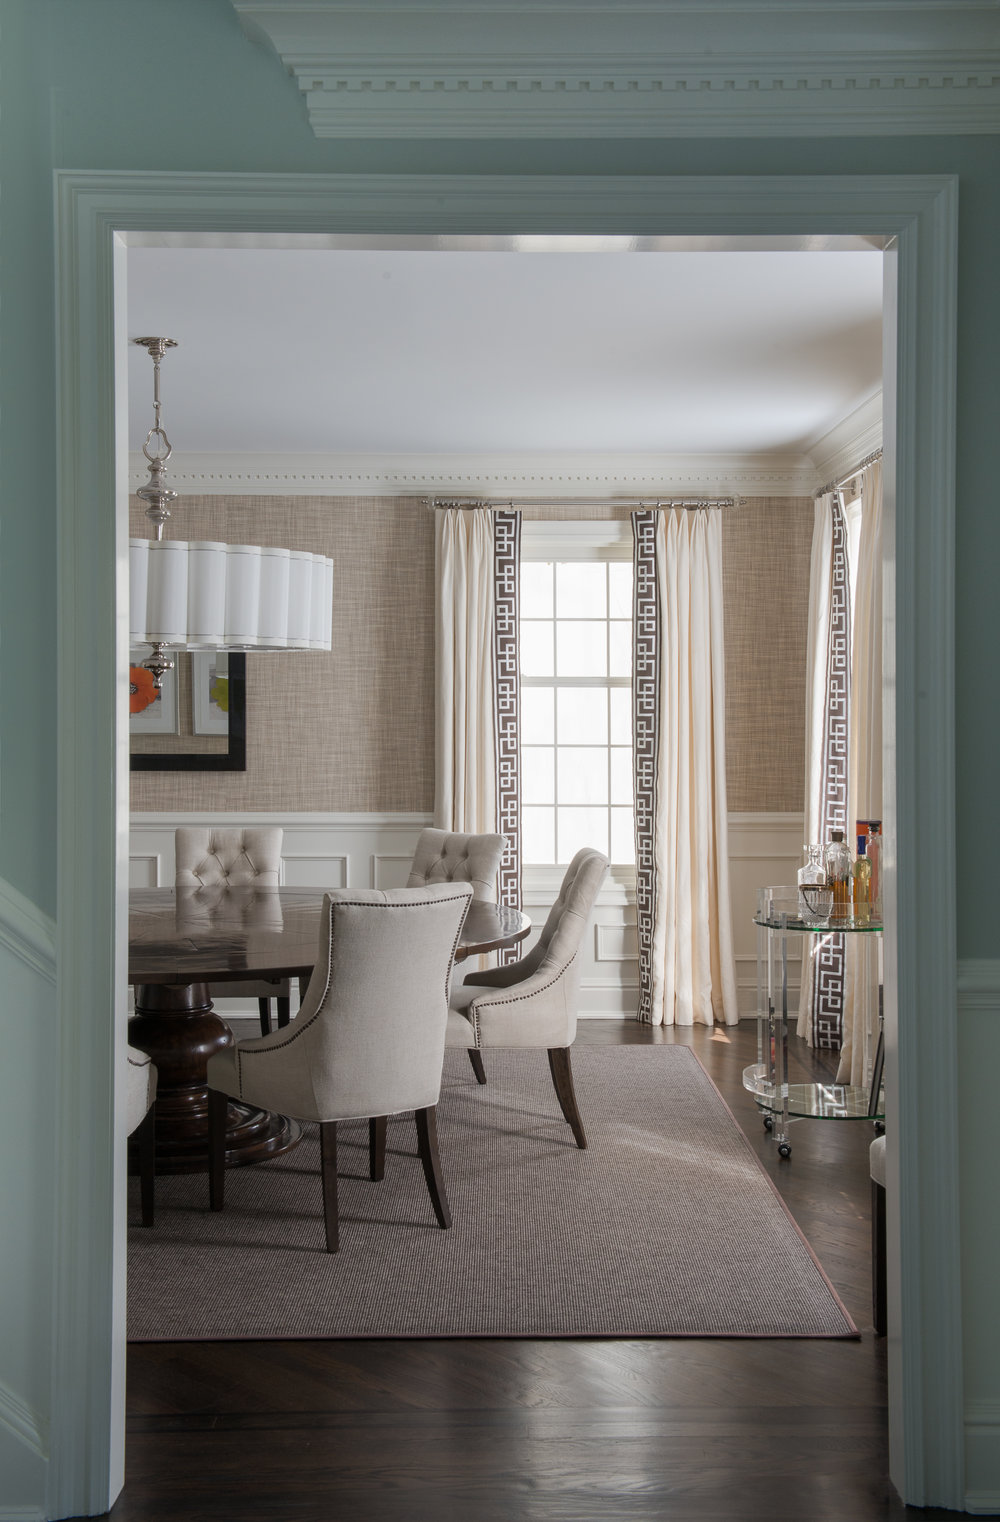 DINING ROOM - WINDOW TREATMENT